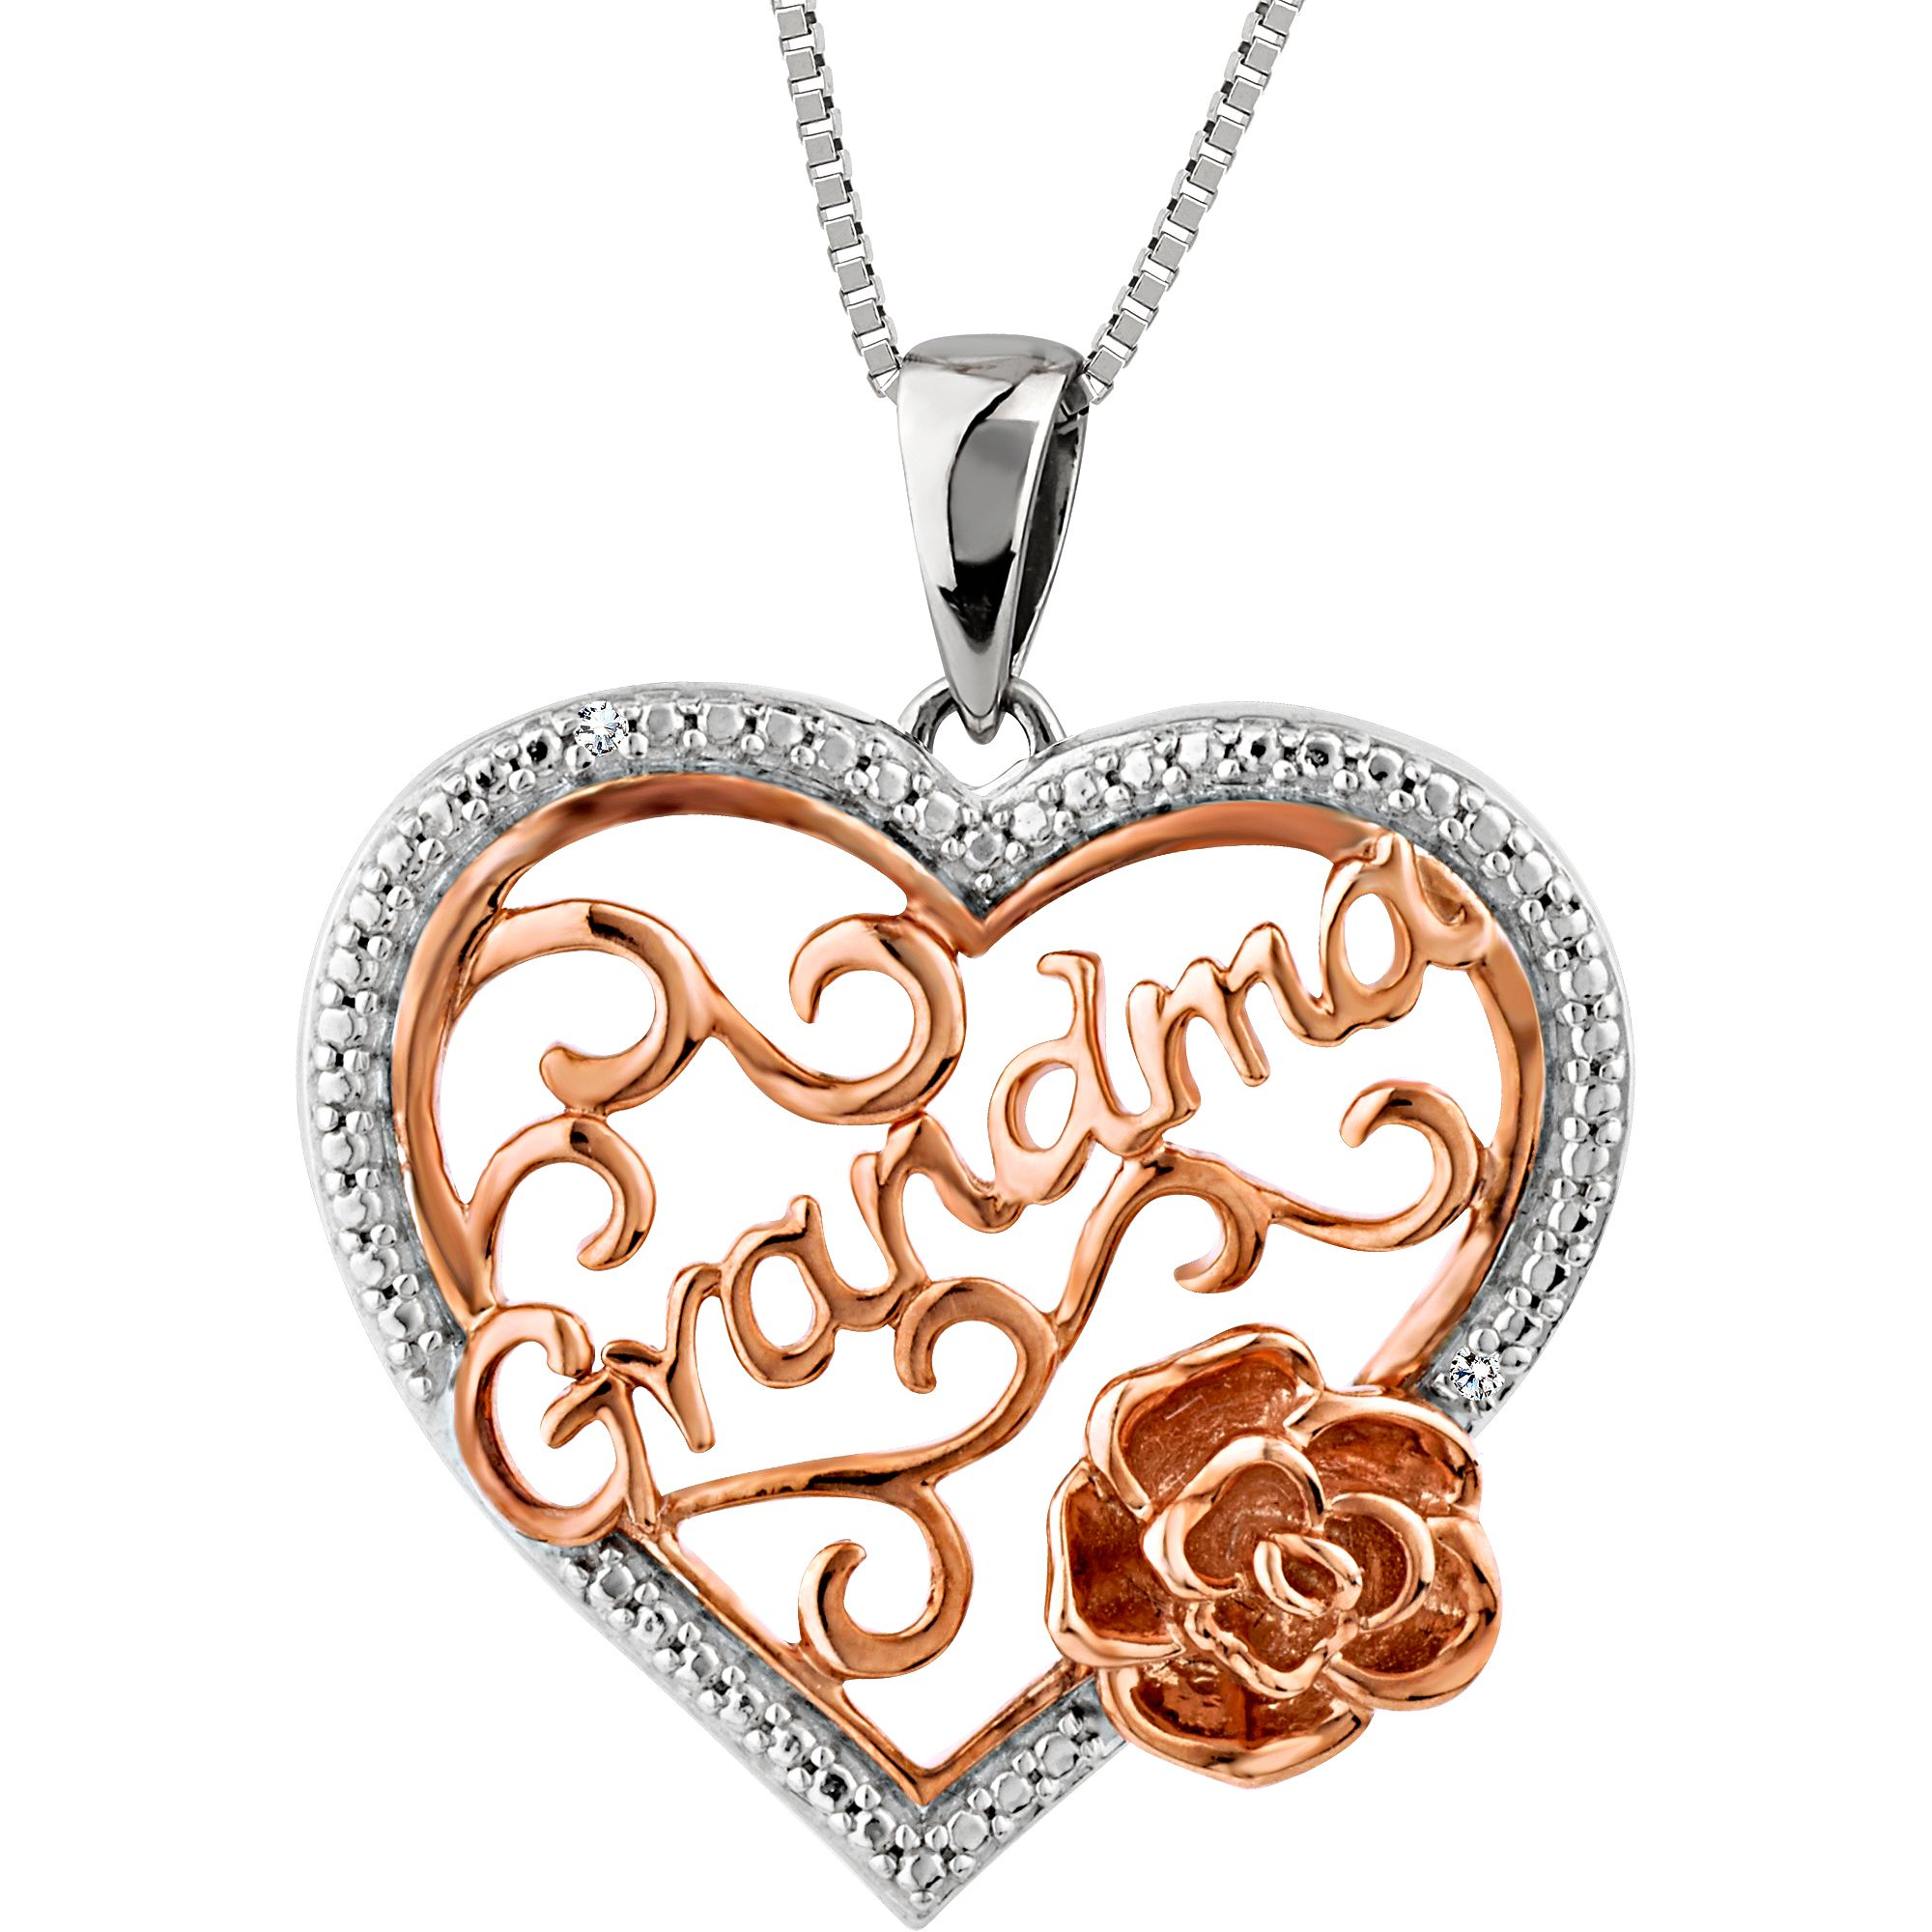 Tell Grandma Just How Much She Means To You With This Beautiful Diamond Accent Pendant Heart Pendant Jewelry Heart Pendant Diamond Silver Diamonds